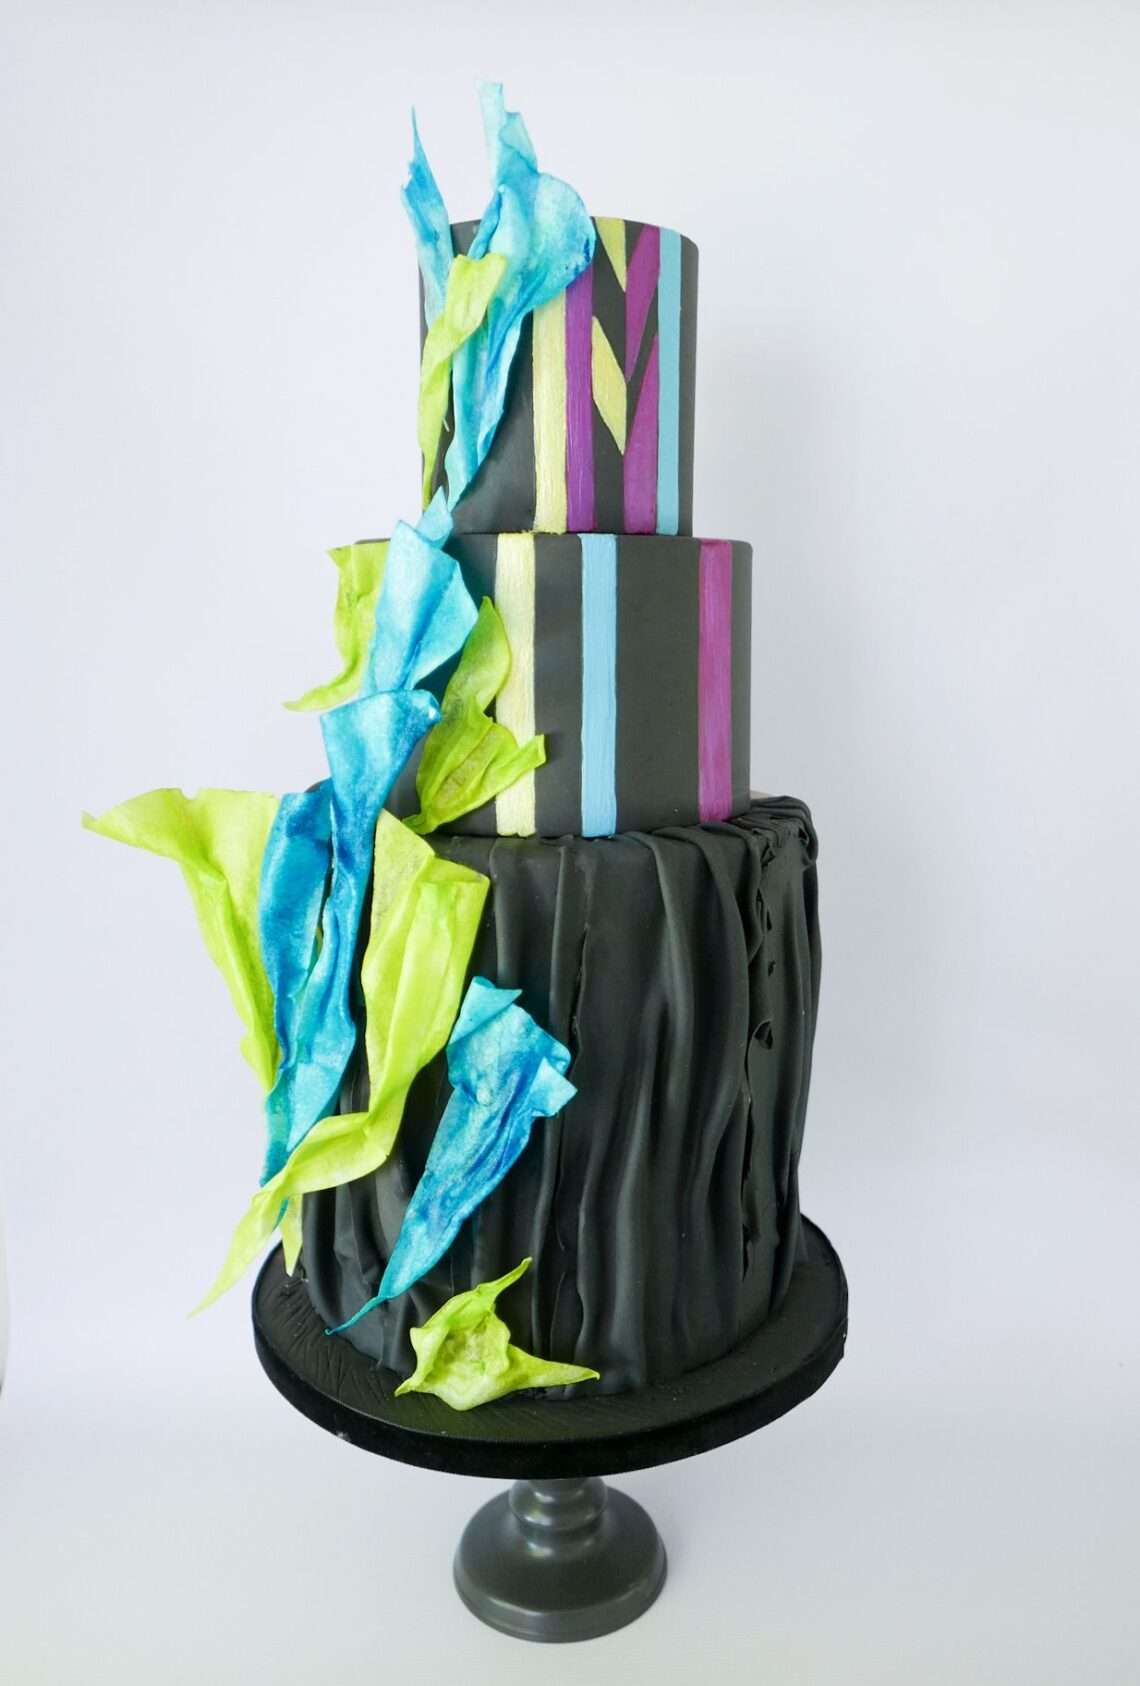 Black 3 Tier Art Cake